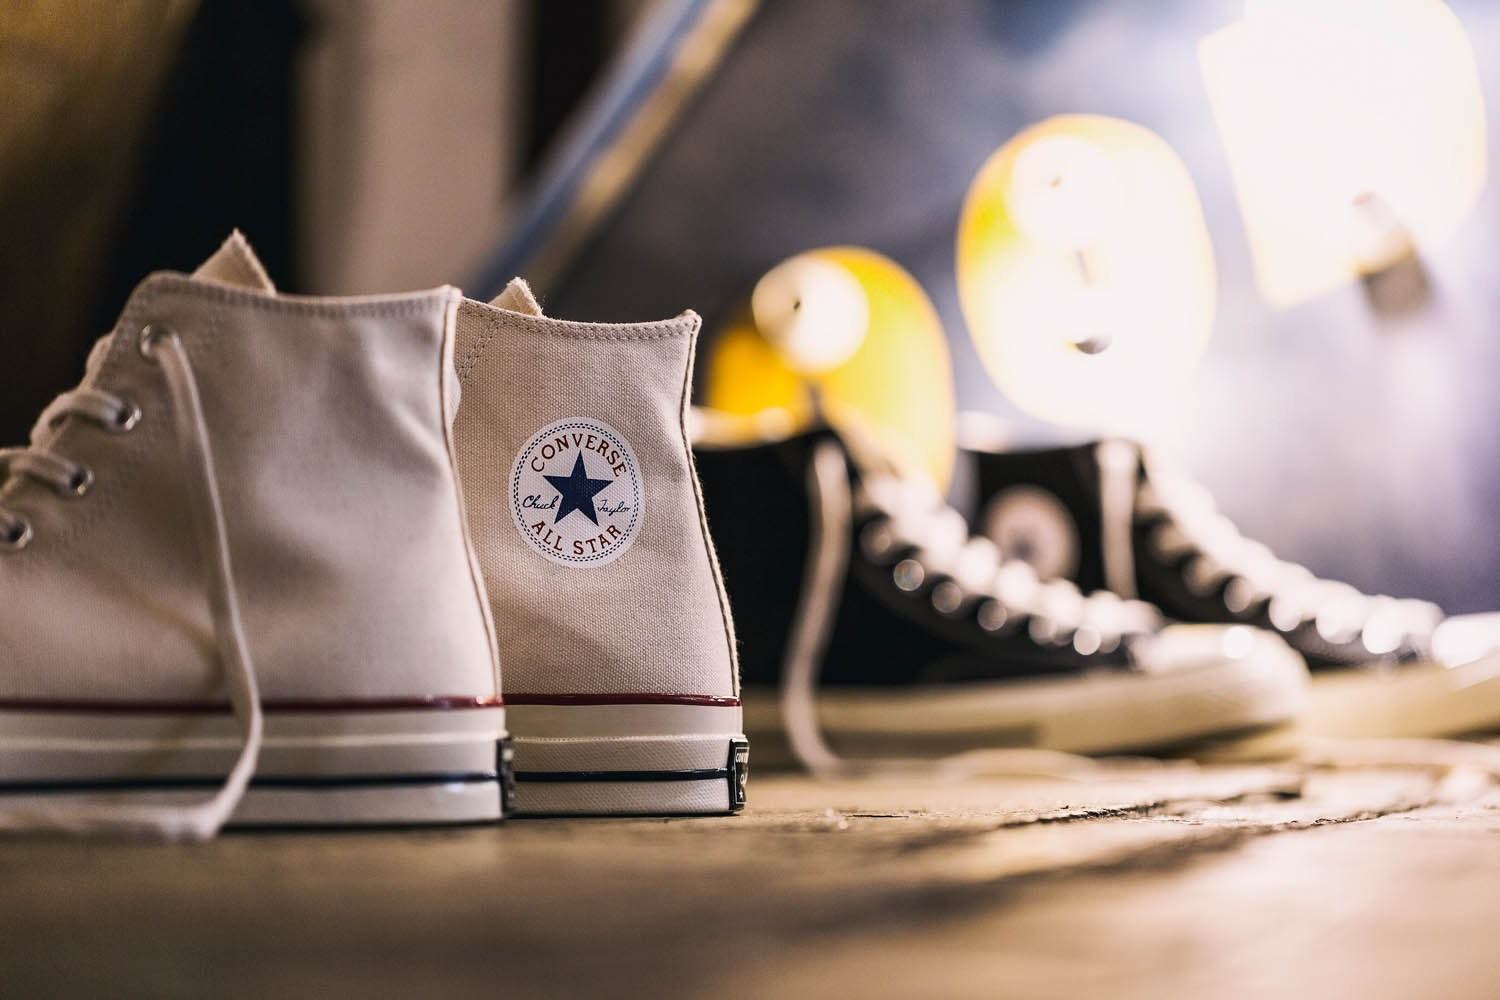 converse-shows-its-colors-with-its-latest-chuck-taylor-all-star-70s-release-11